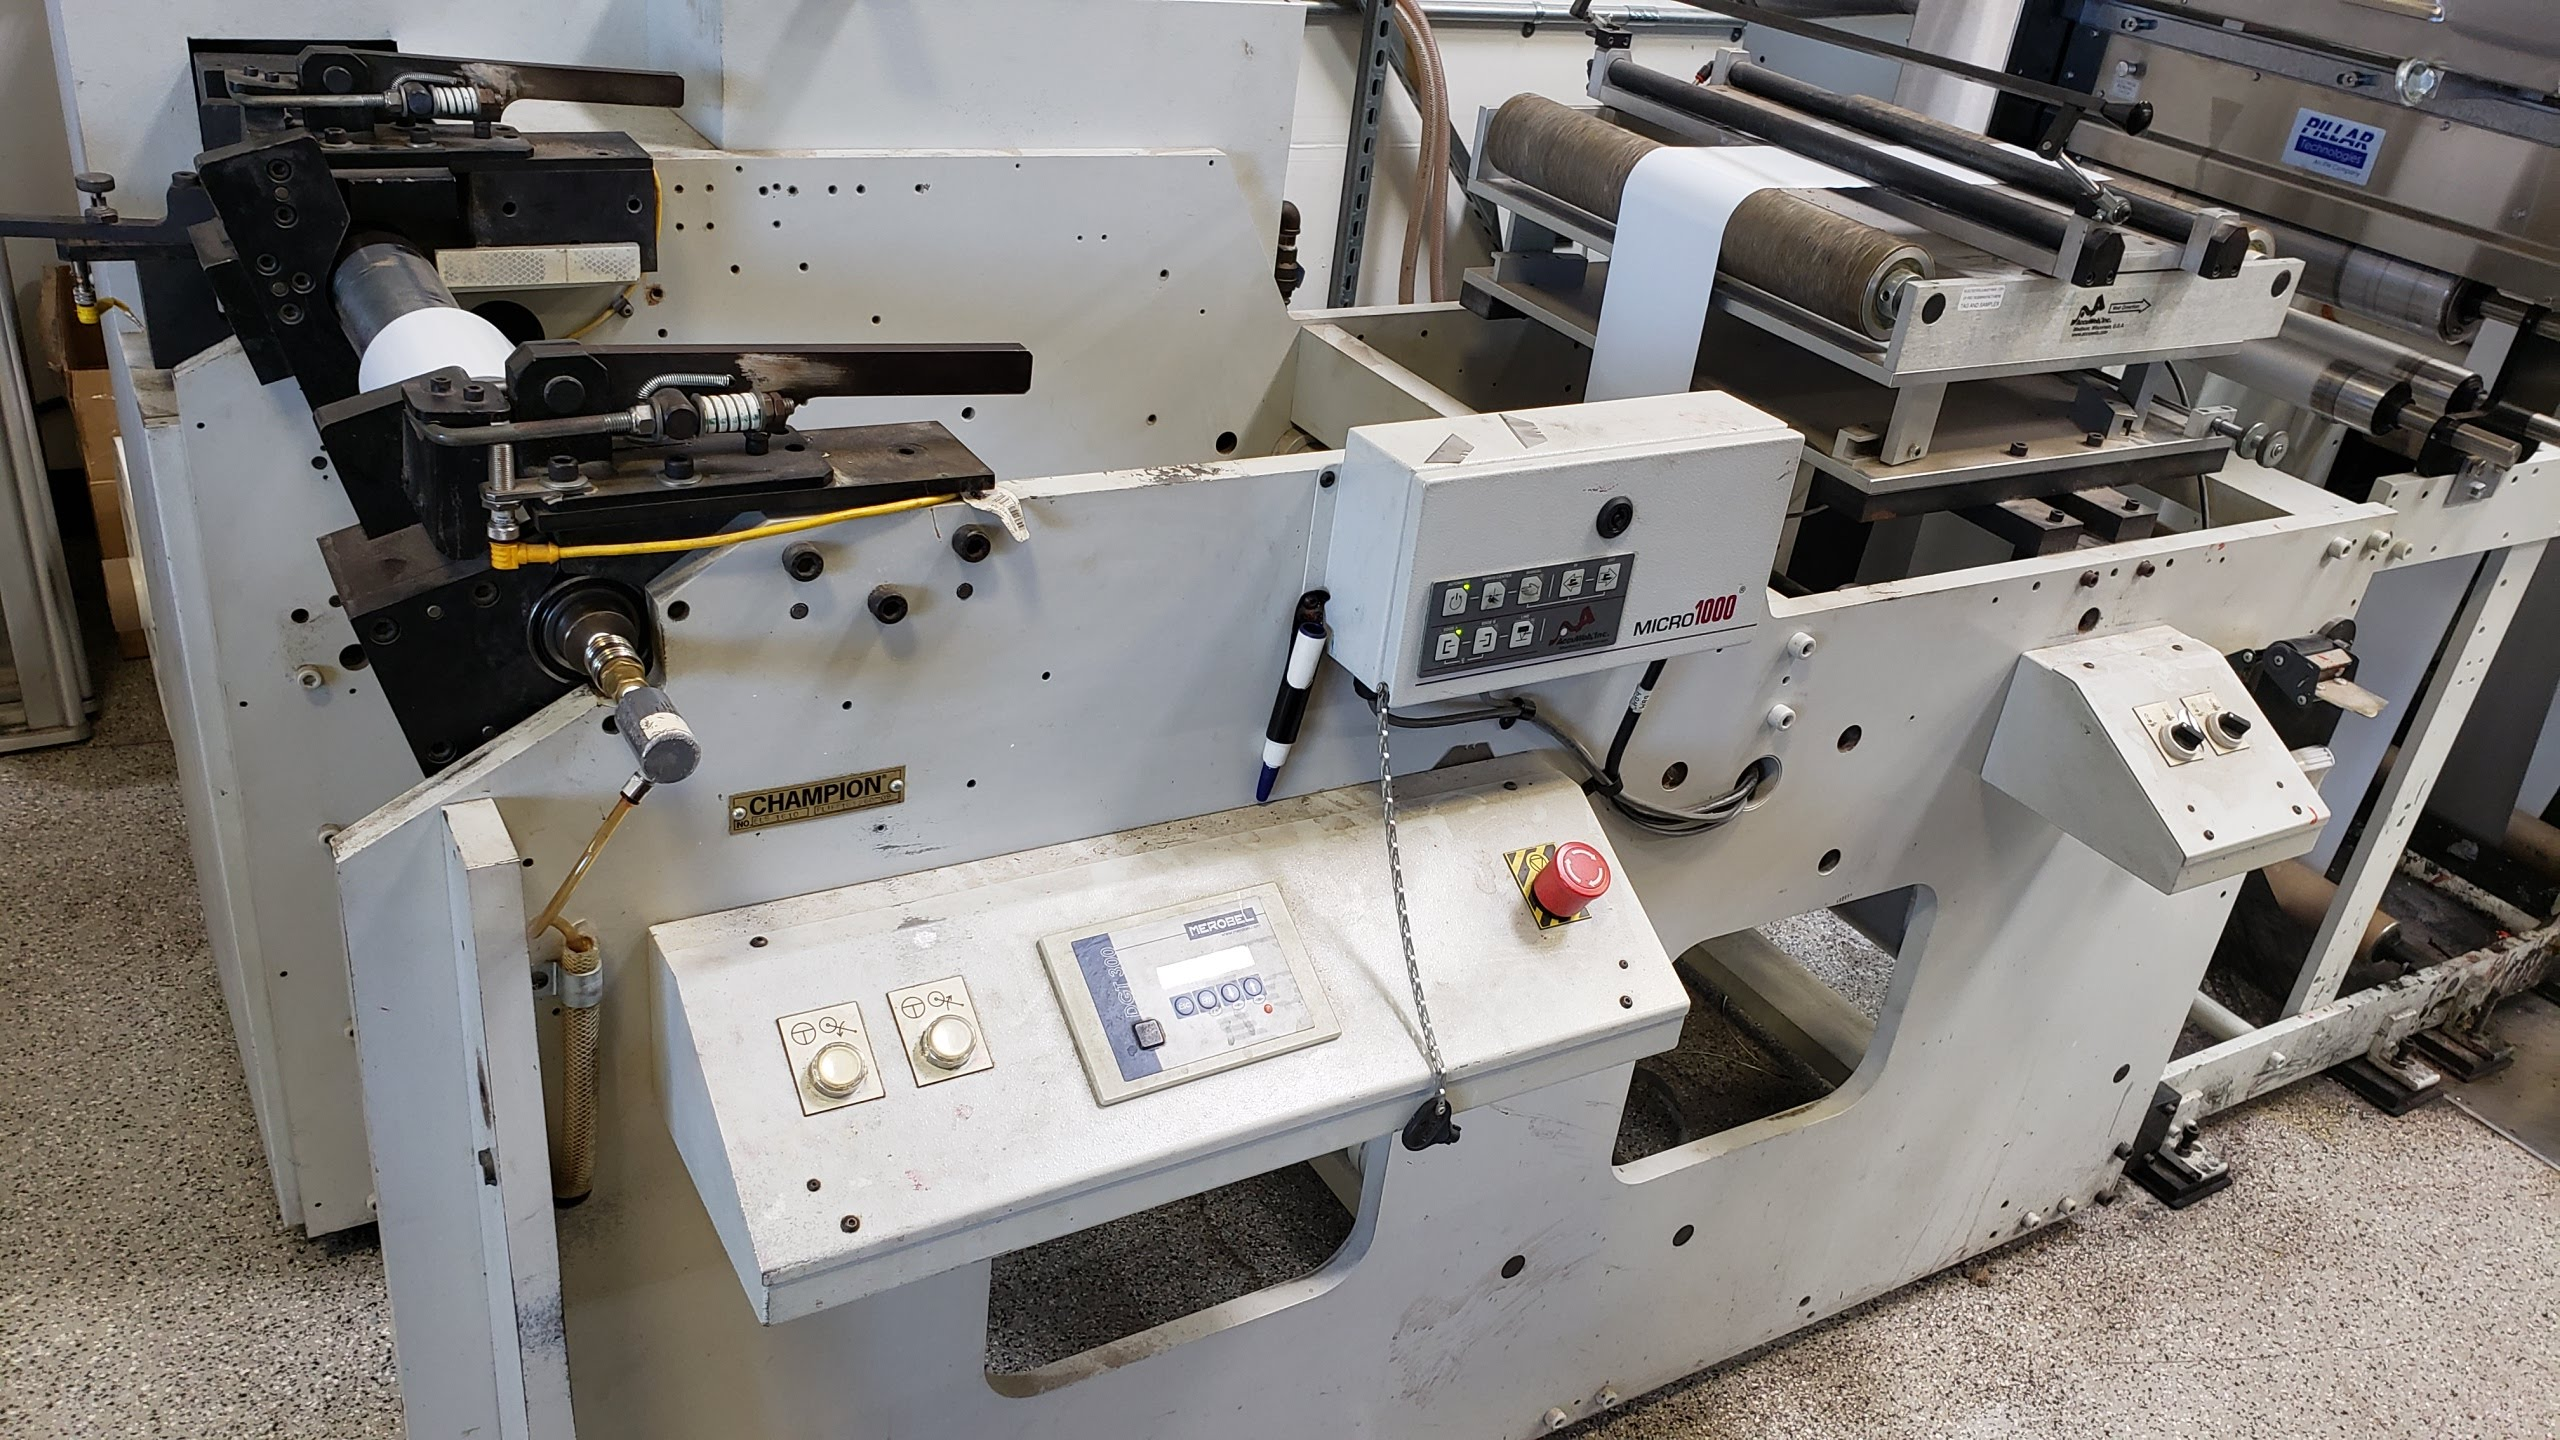 Aquaflex ELS 1610 - Used Flexo Printing Presses and Used Flexographic Equipment-19